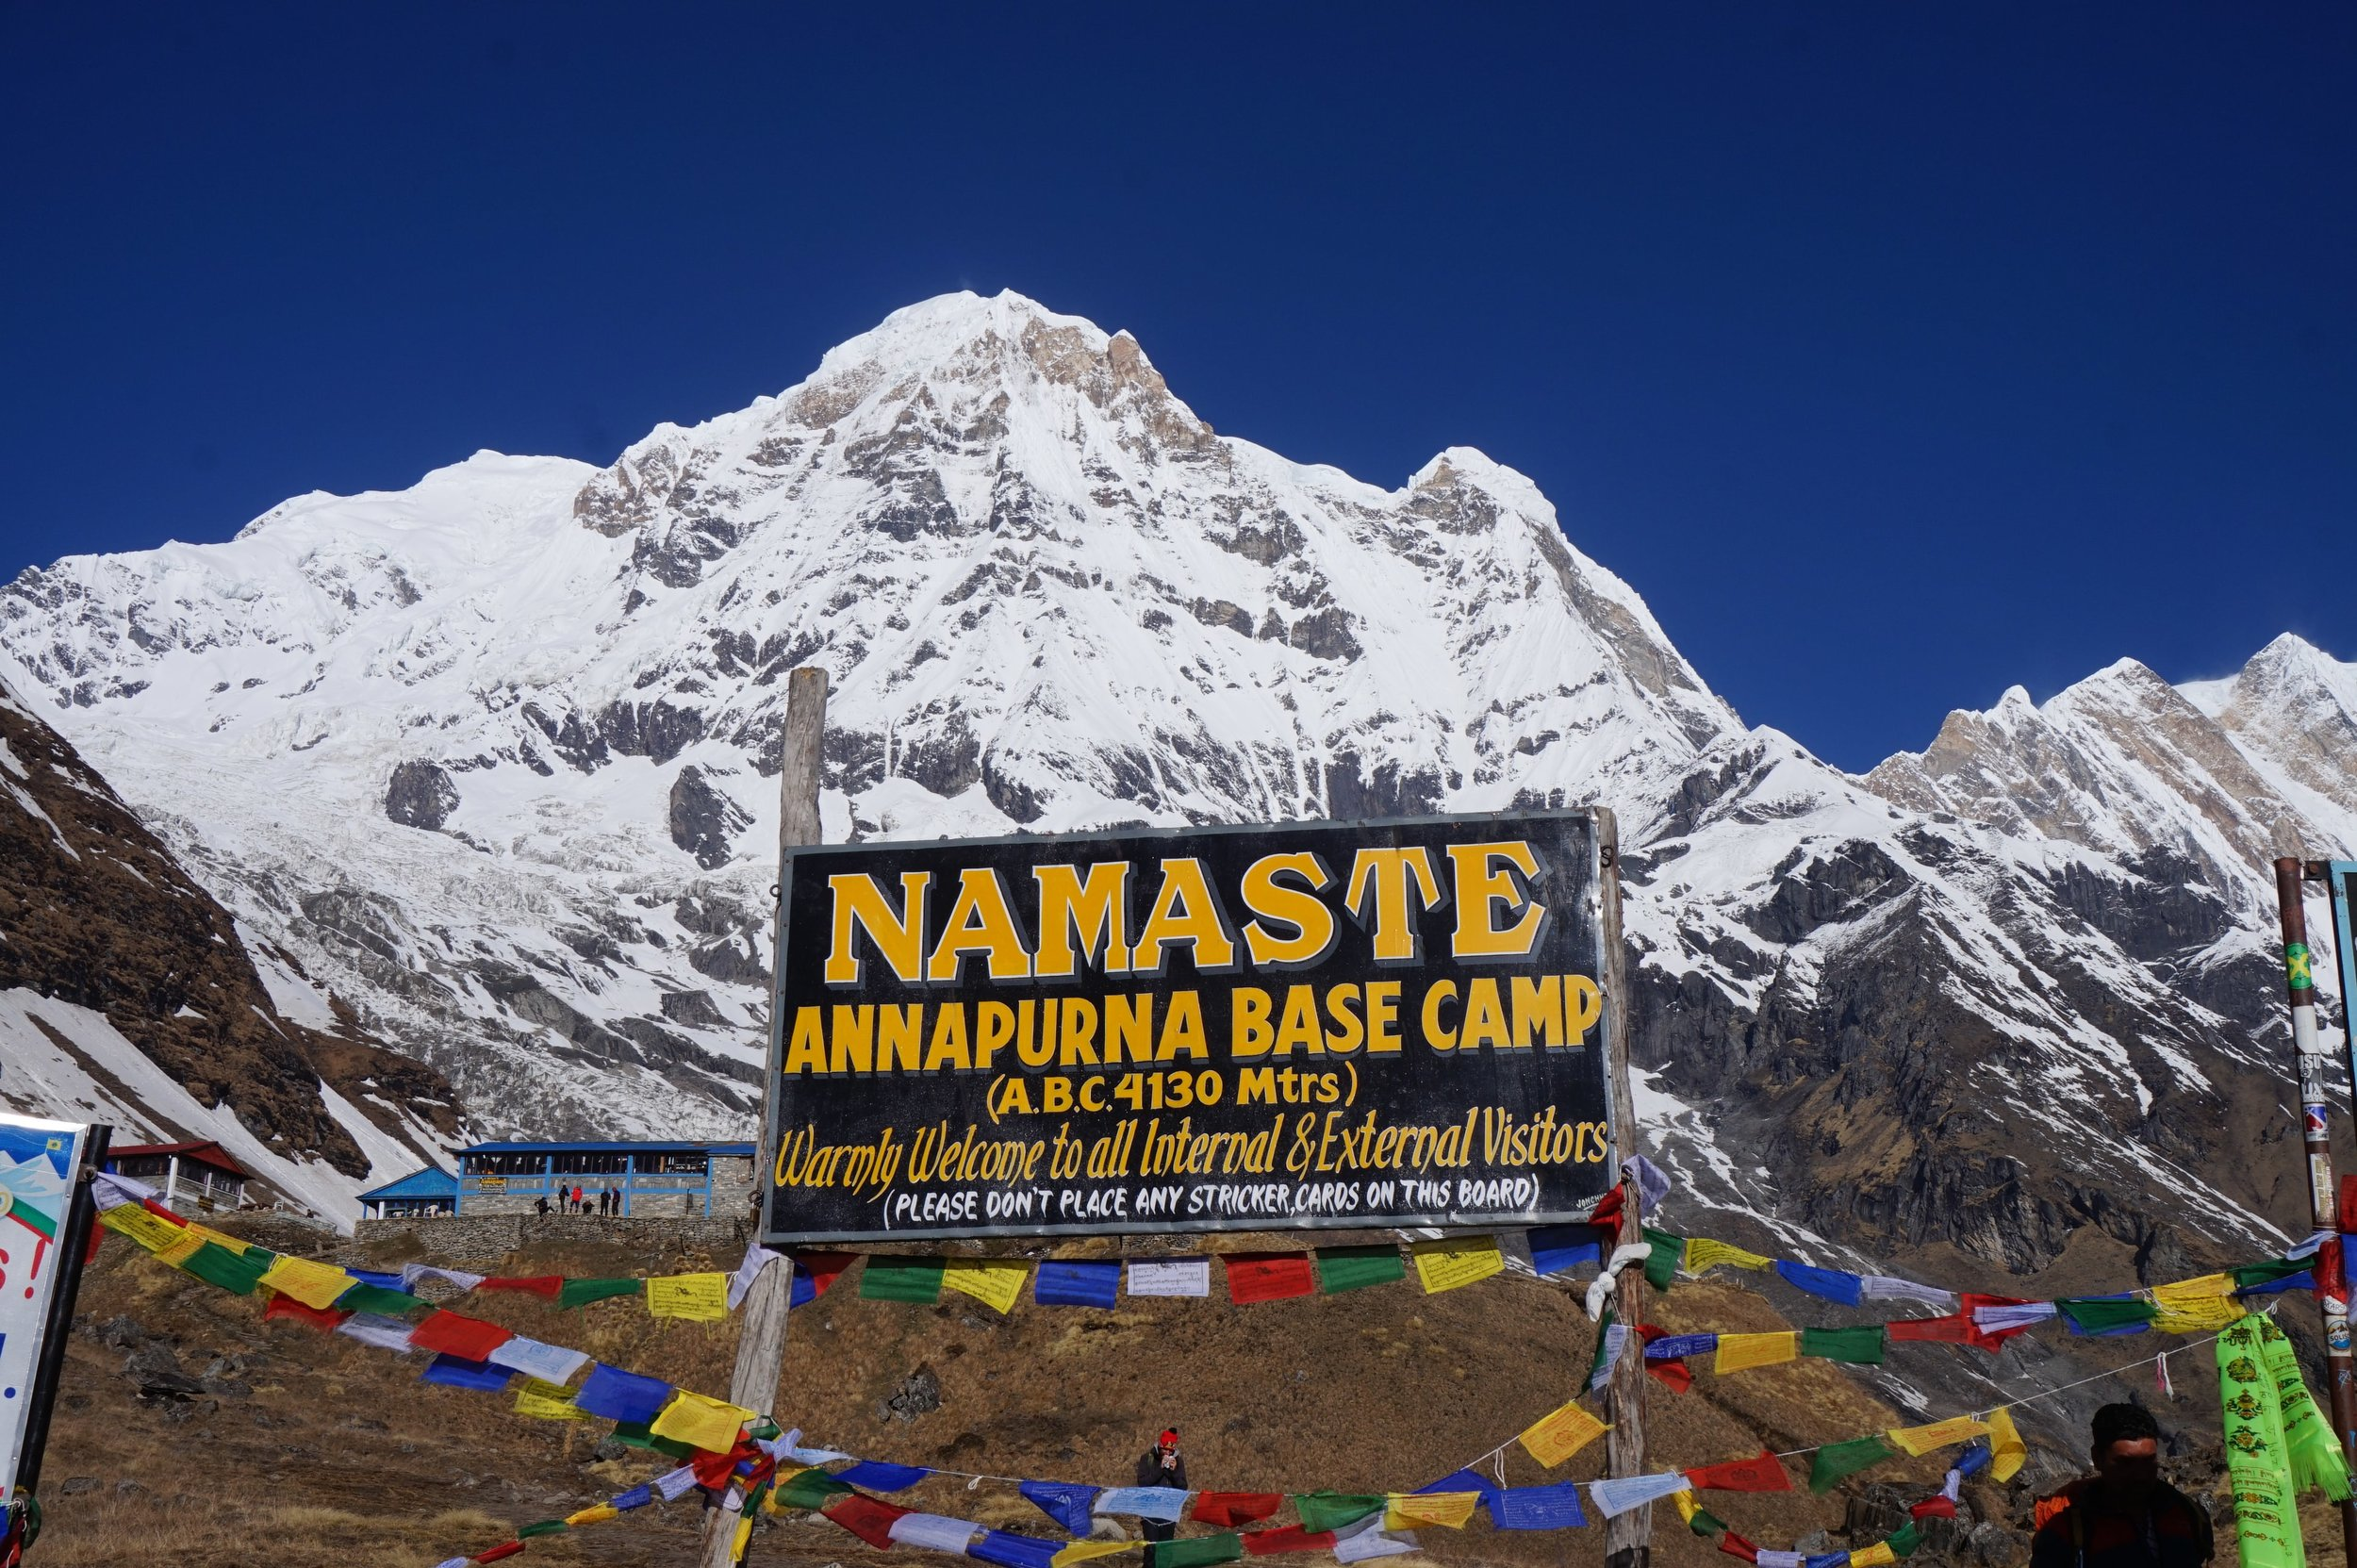 Finally reached the Annapurna Base Camp at 4130 meters!